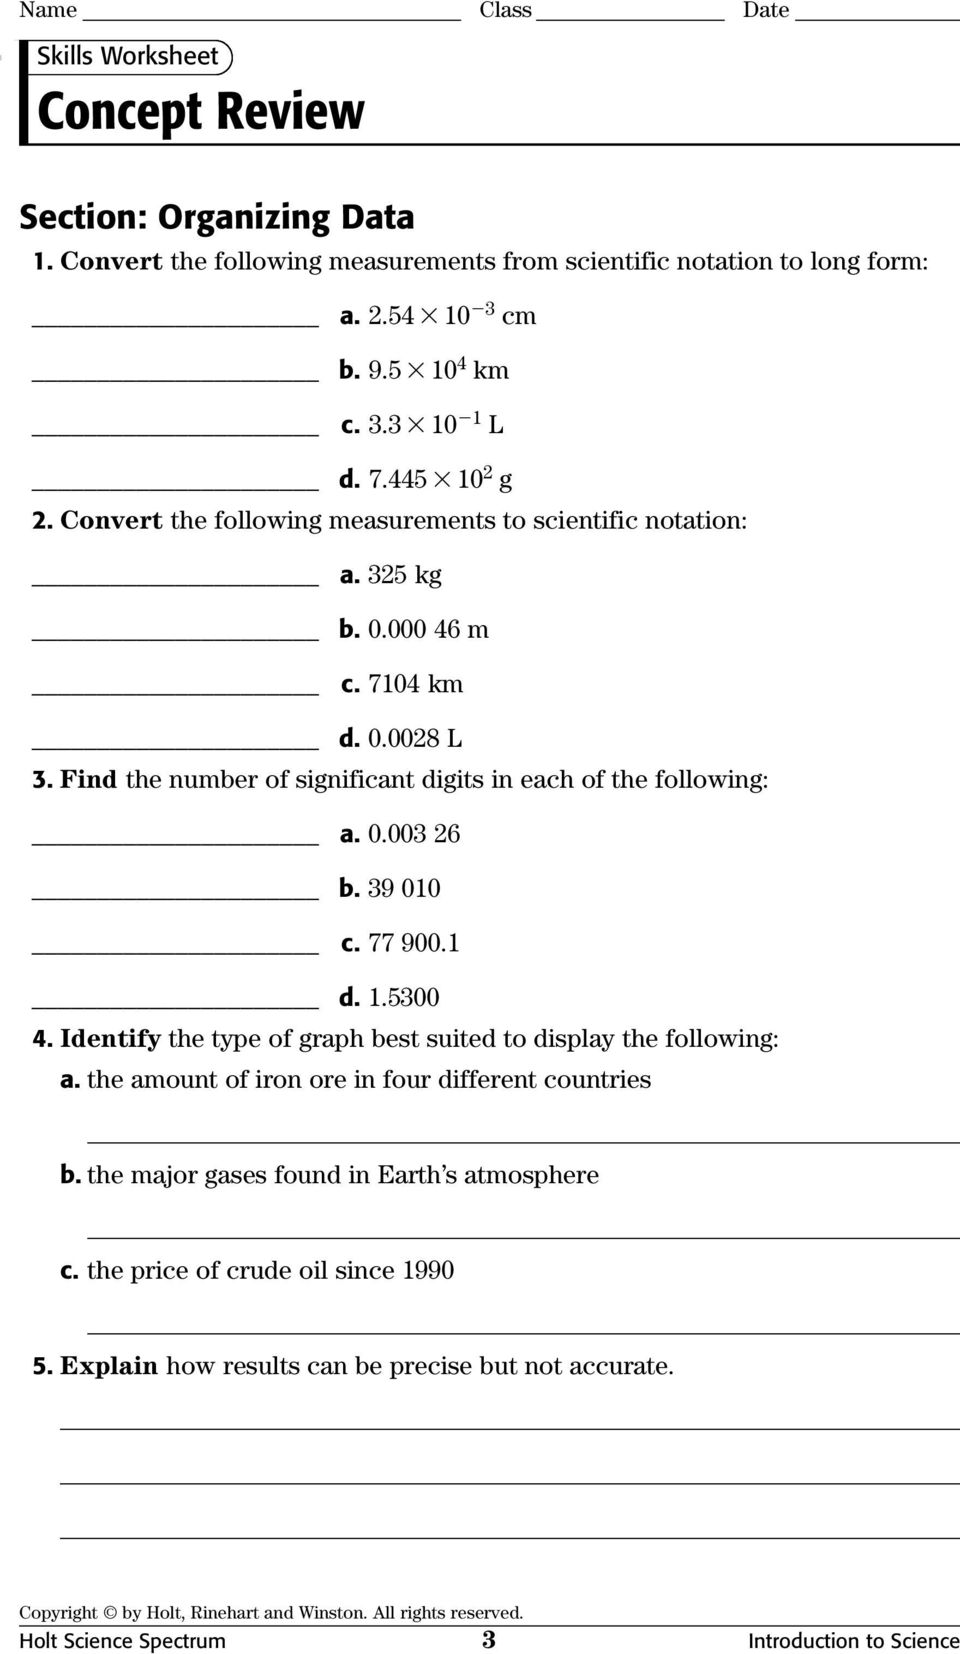 Printables Behavior Of Gases Worksheet physical science concept review worksheets with answer keys pdf find the number of significant digits in each following a 0 003 26